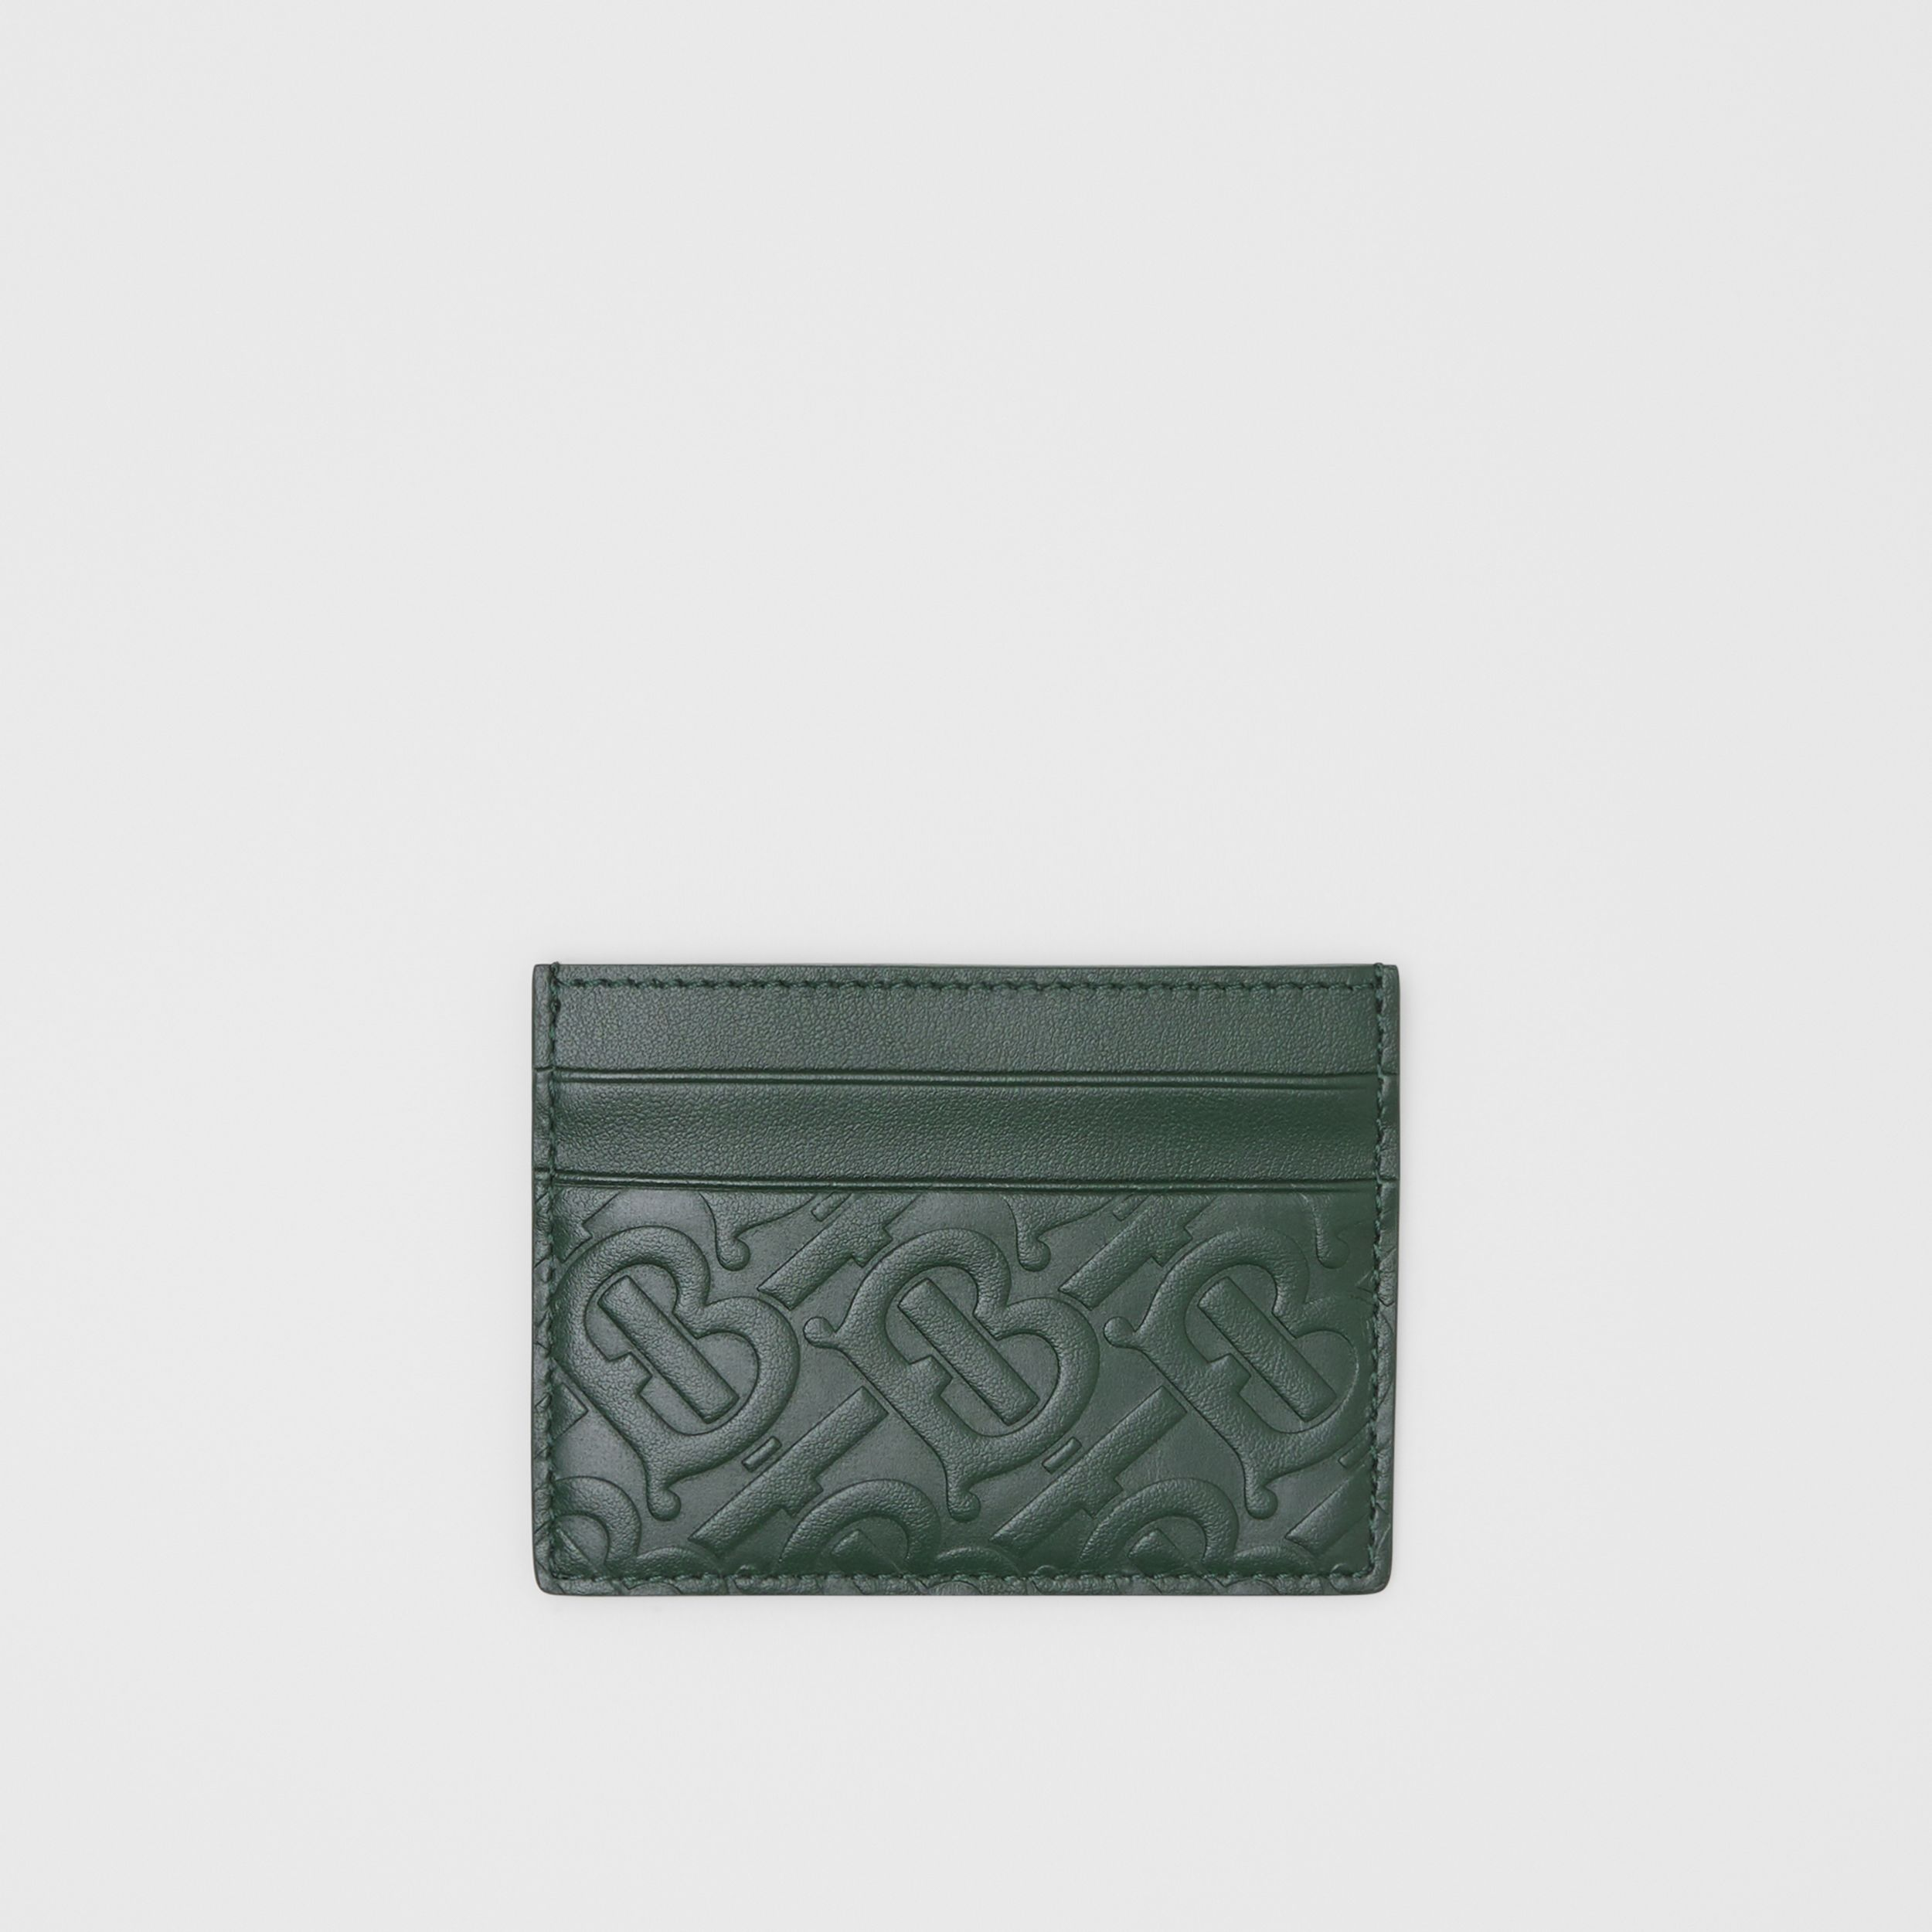 Monogram Leather Card Case in Dark Pine Green - Men | Burberry - 1